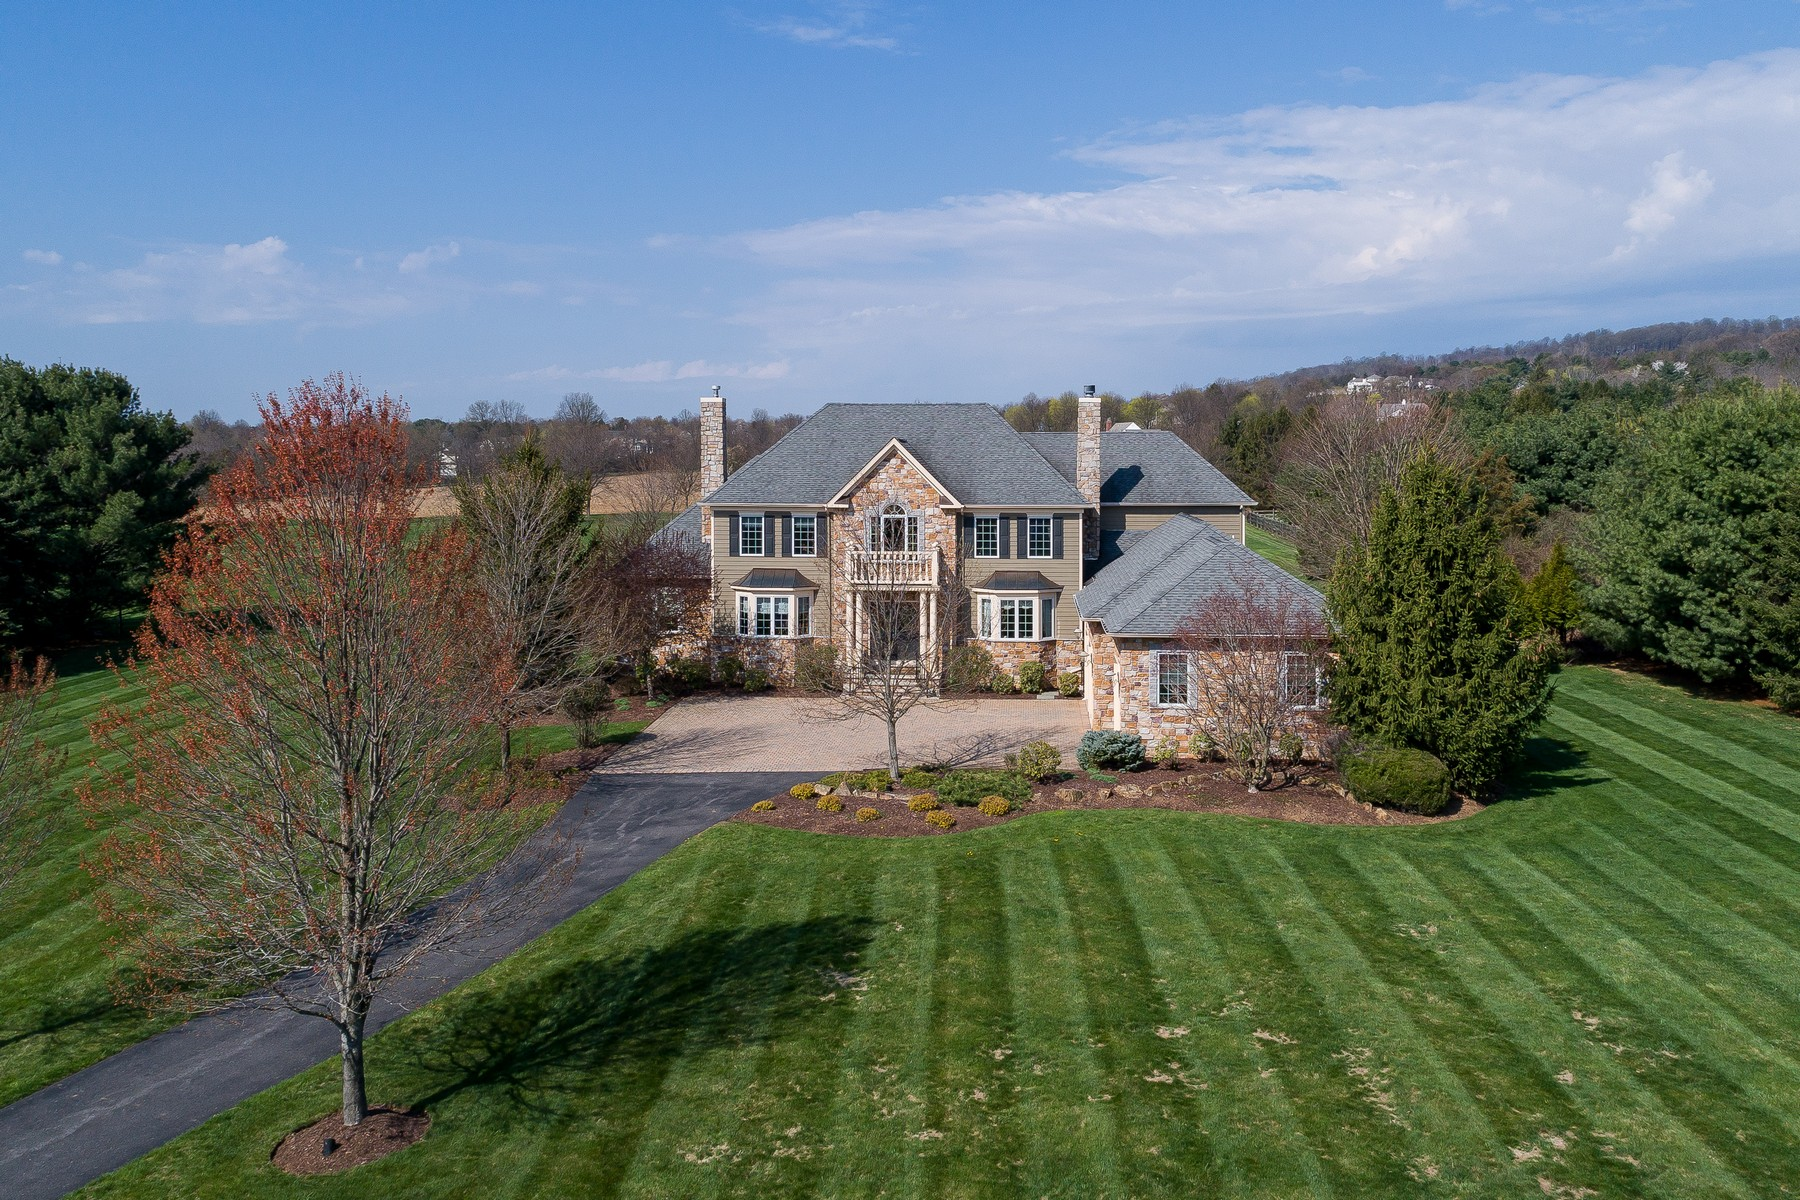 Single Family Home for Sale at Striking Custom Colonial 4 Viewpoint Terrace Tewksbury Township, New Jersey 07830 United States